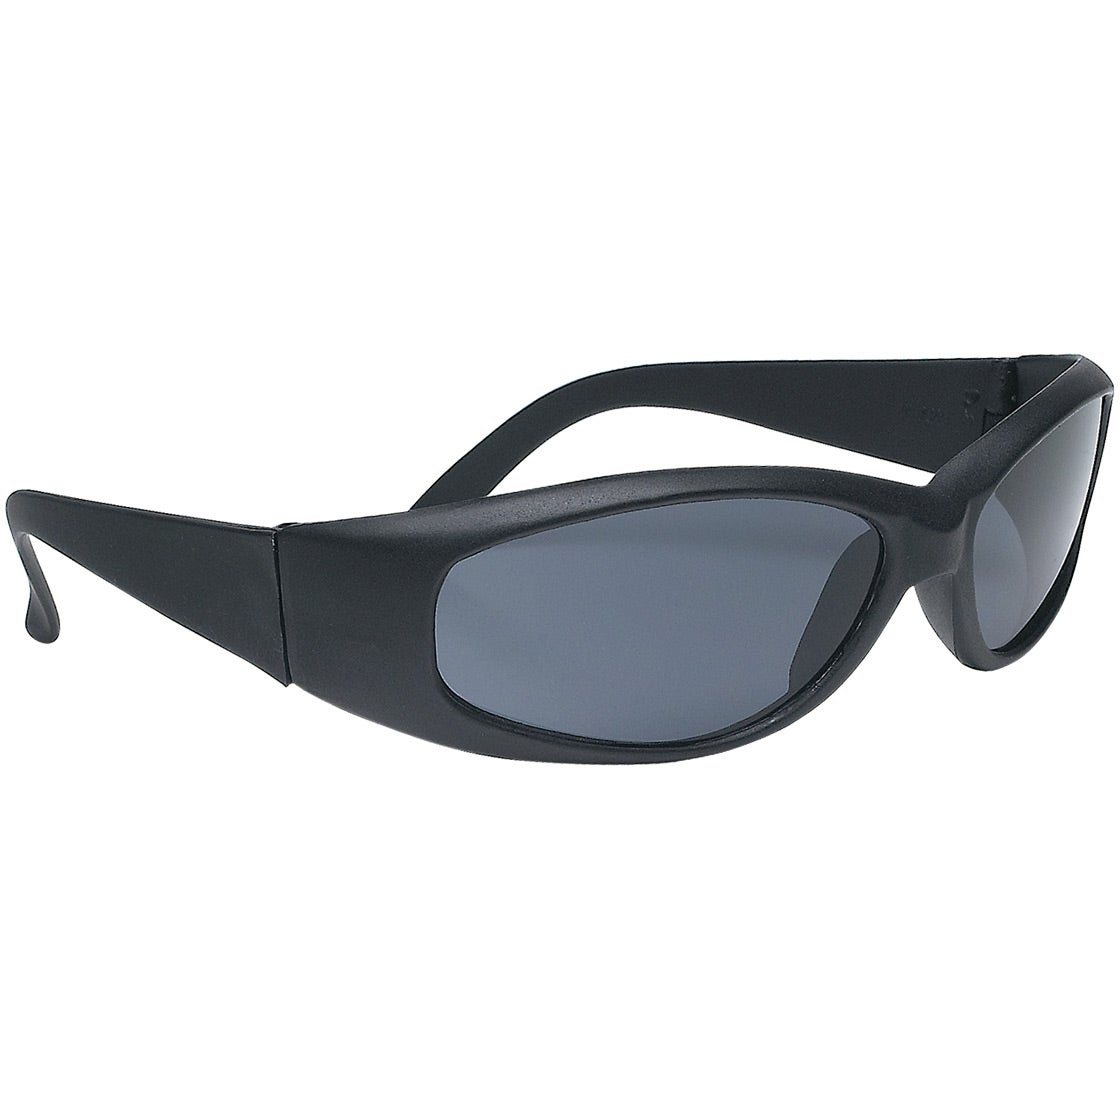 a0b40fe09e24 CLICK HERE to Order Eco Friendly Sunglasses Printed with Your Logo for  $1.81 Ea.